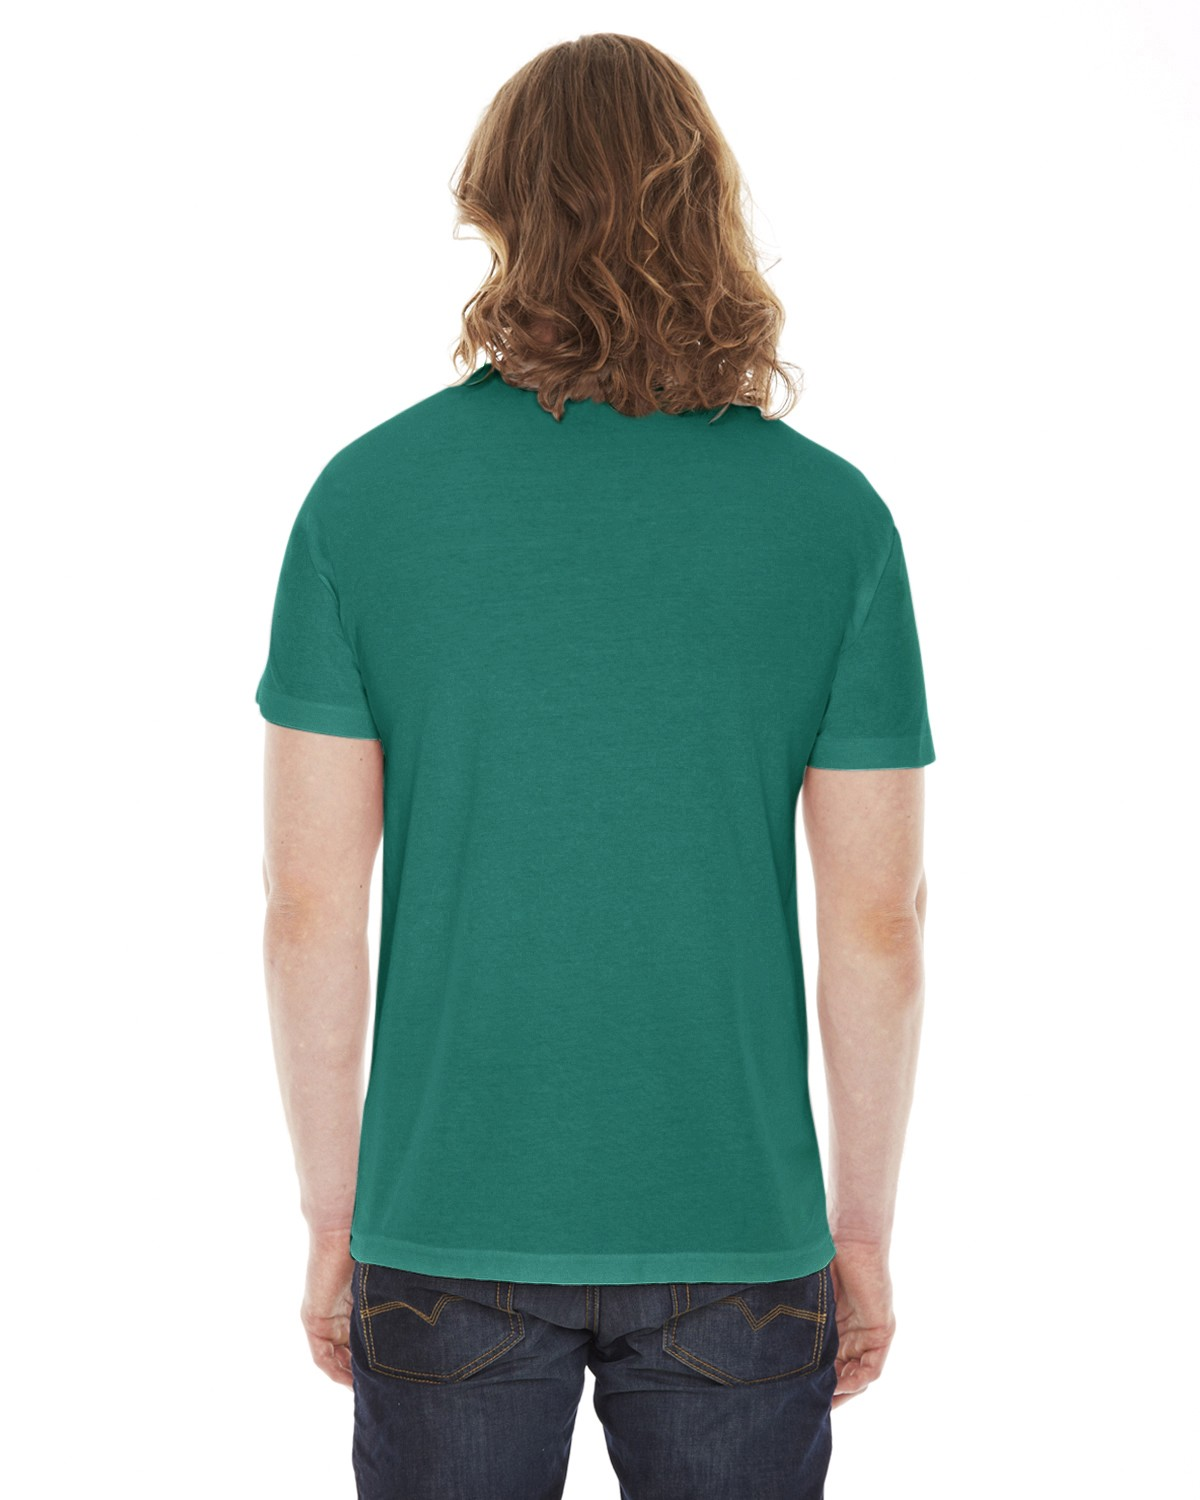 BB401W American Apparel EVERGREEN